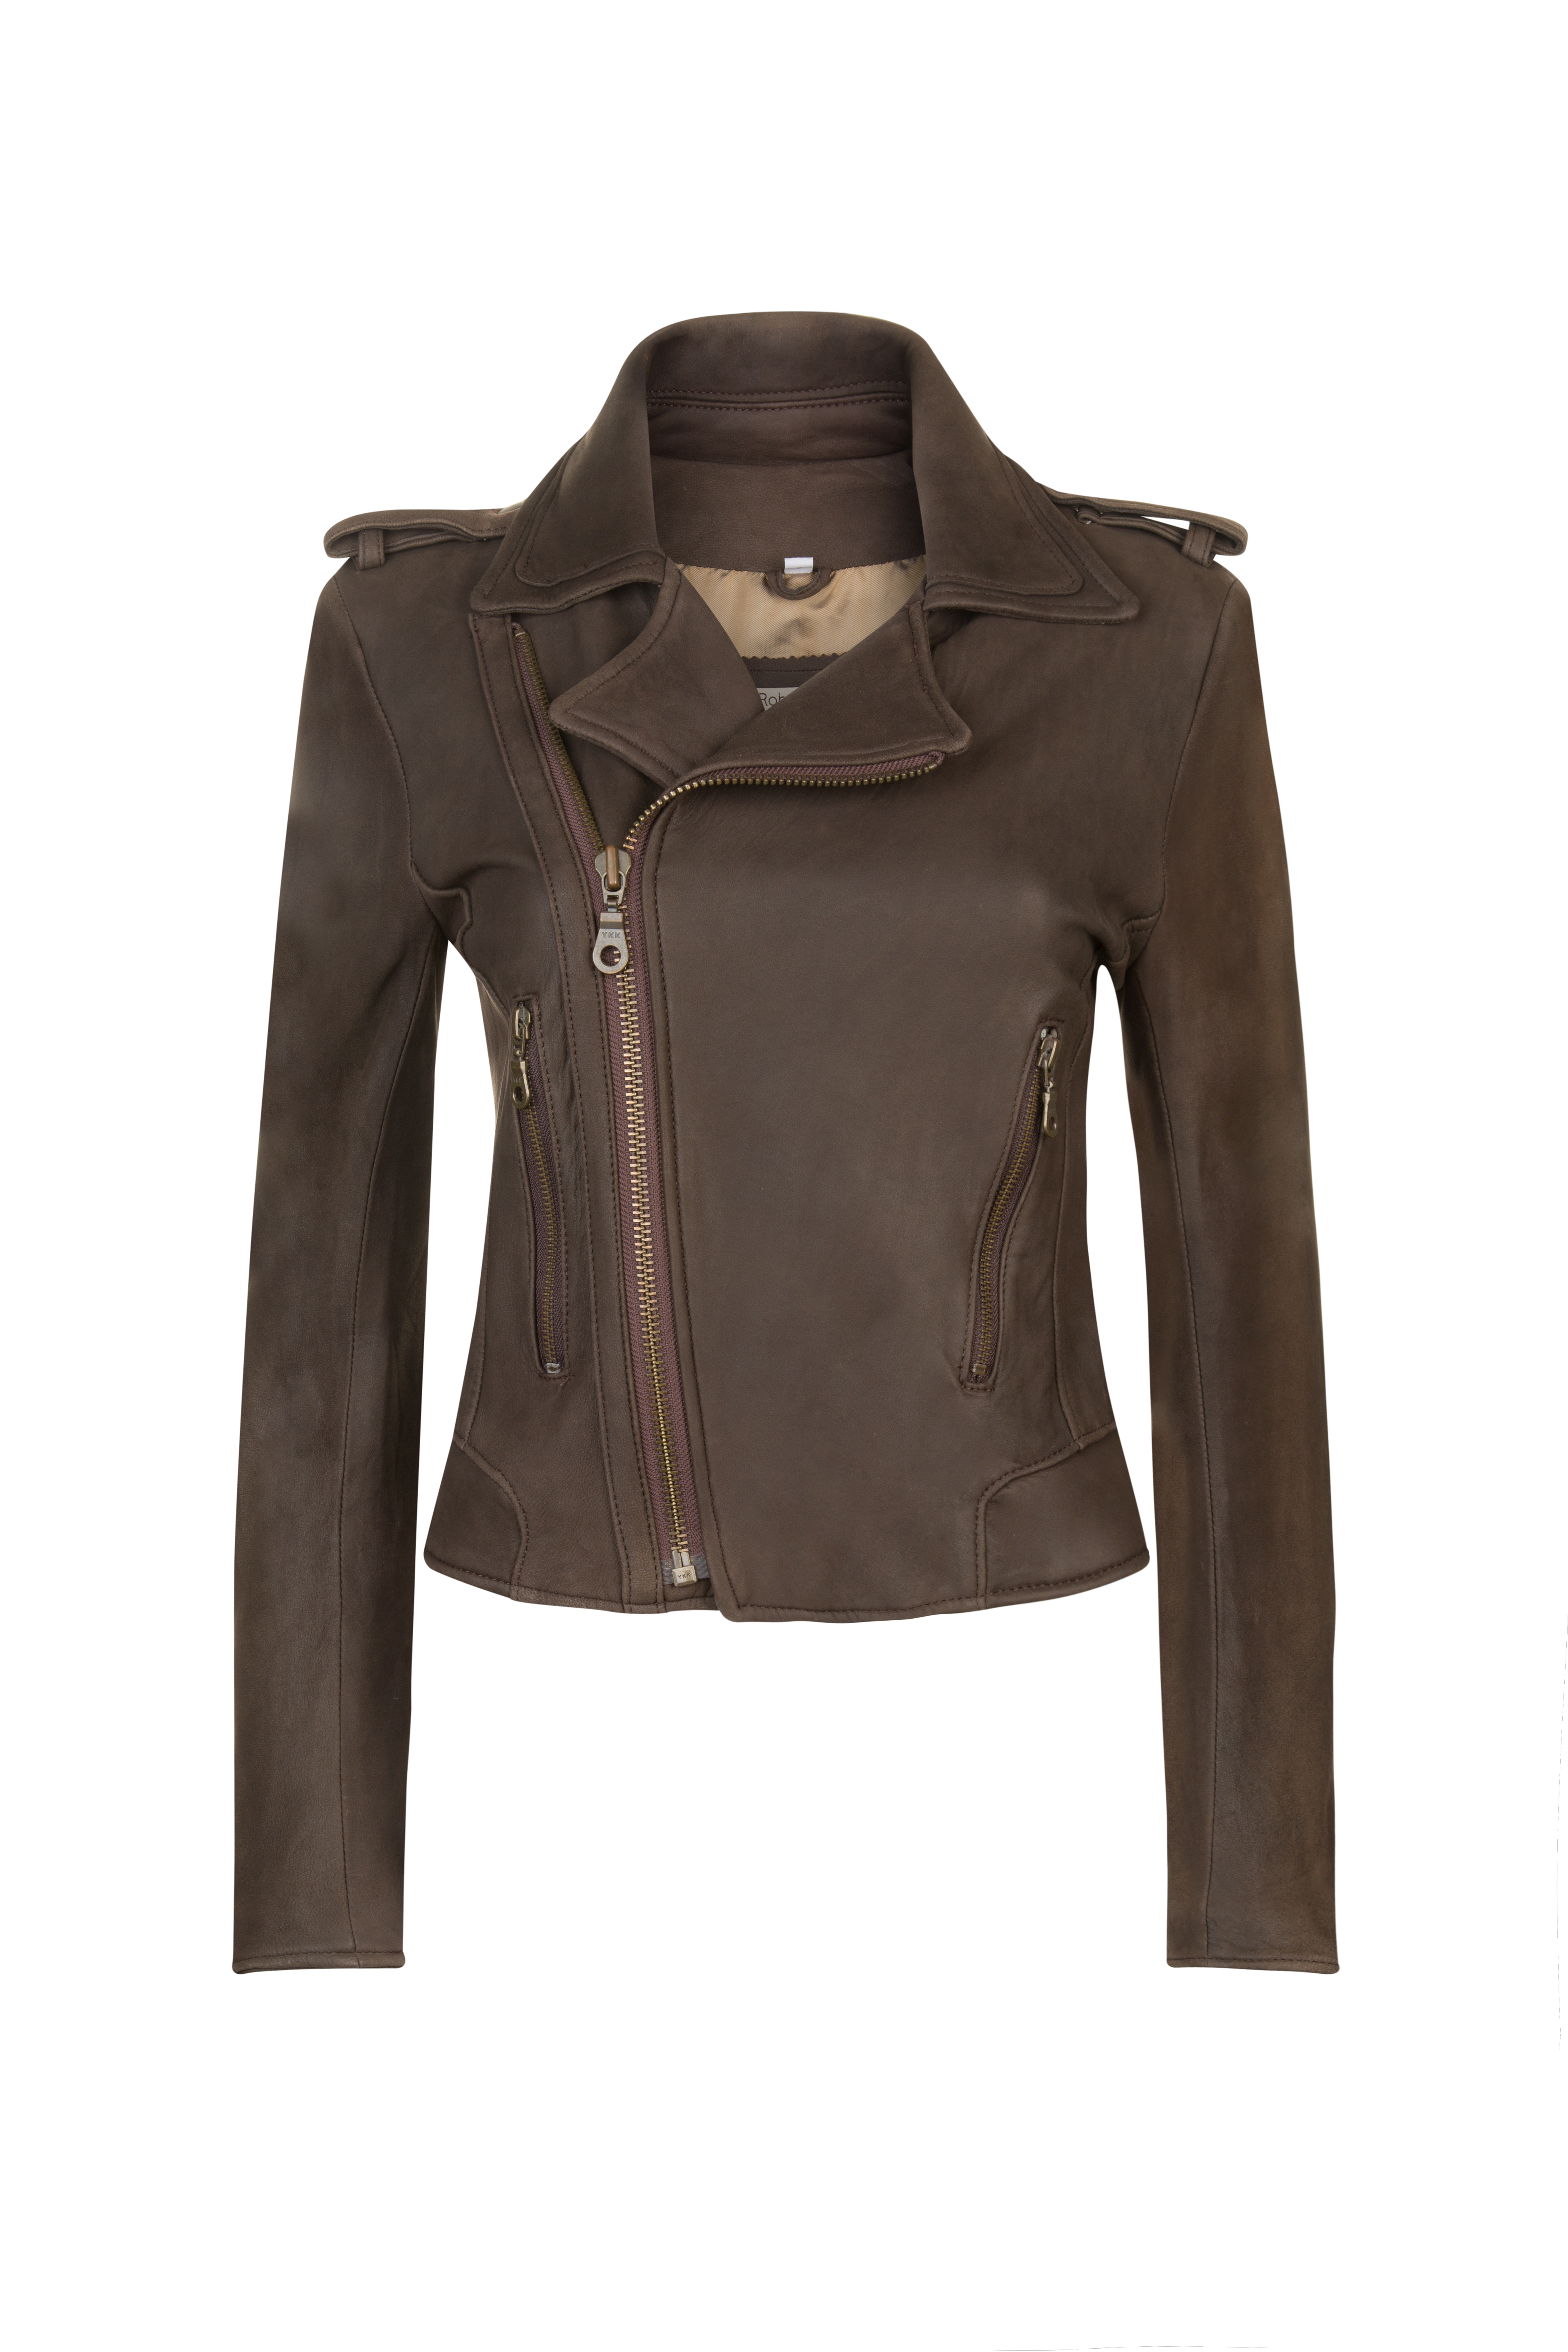 OBE Leather, Bellagio Biker